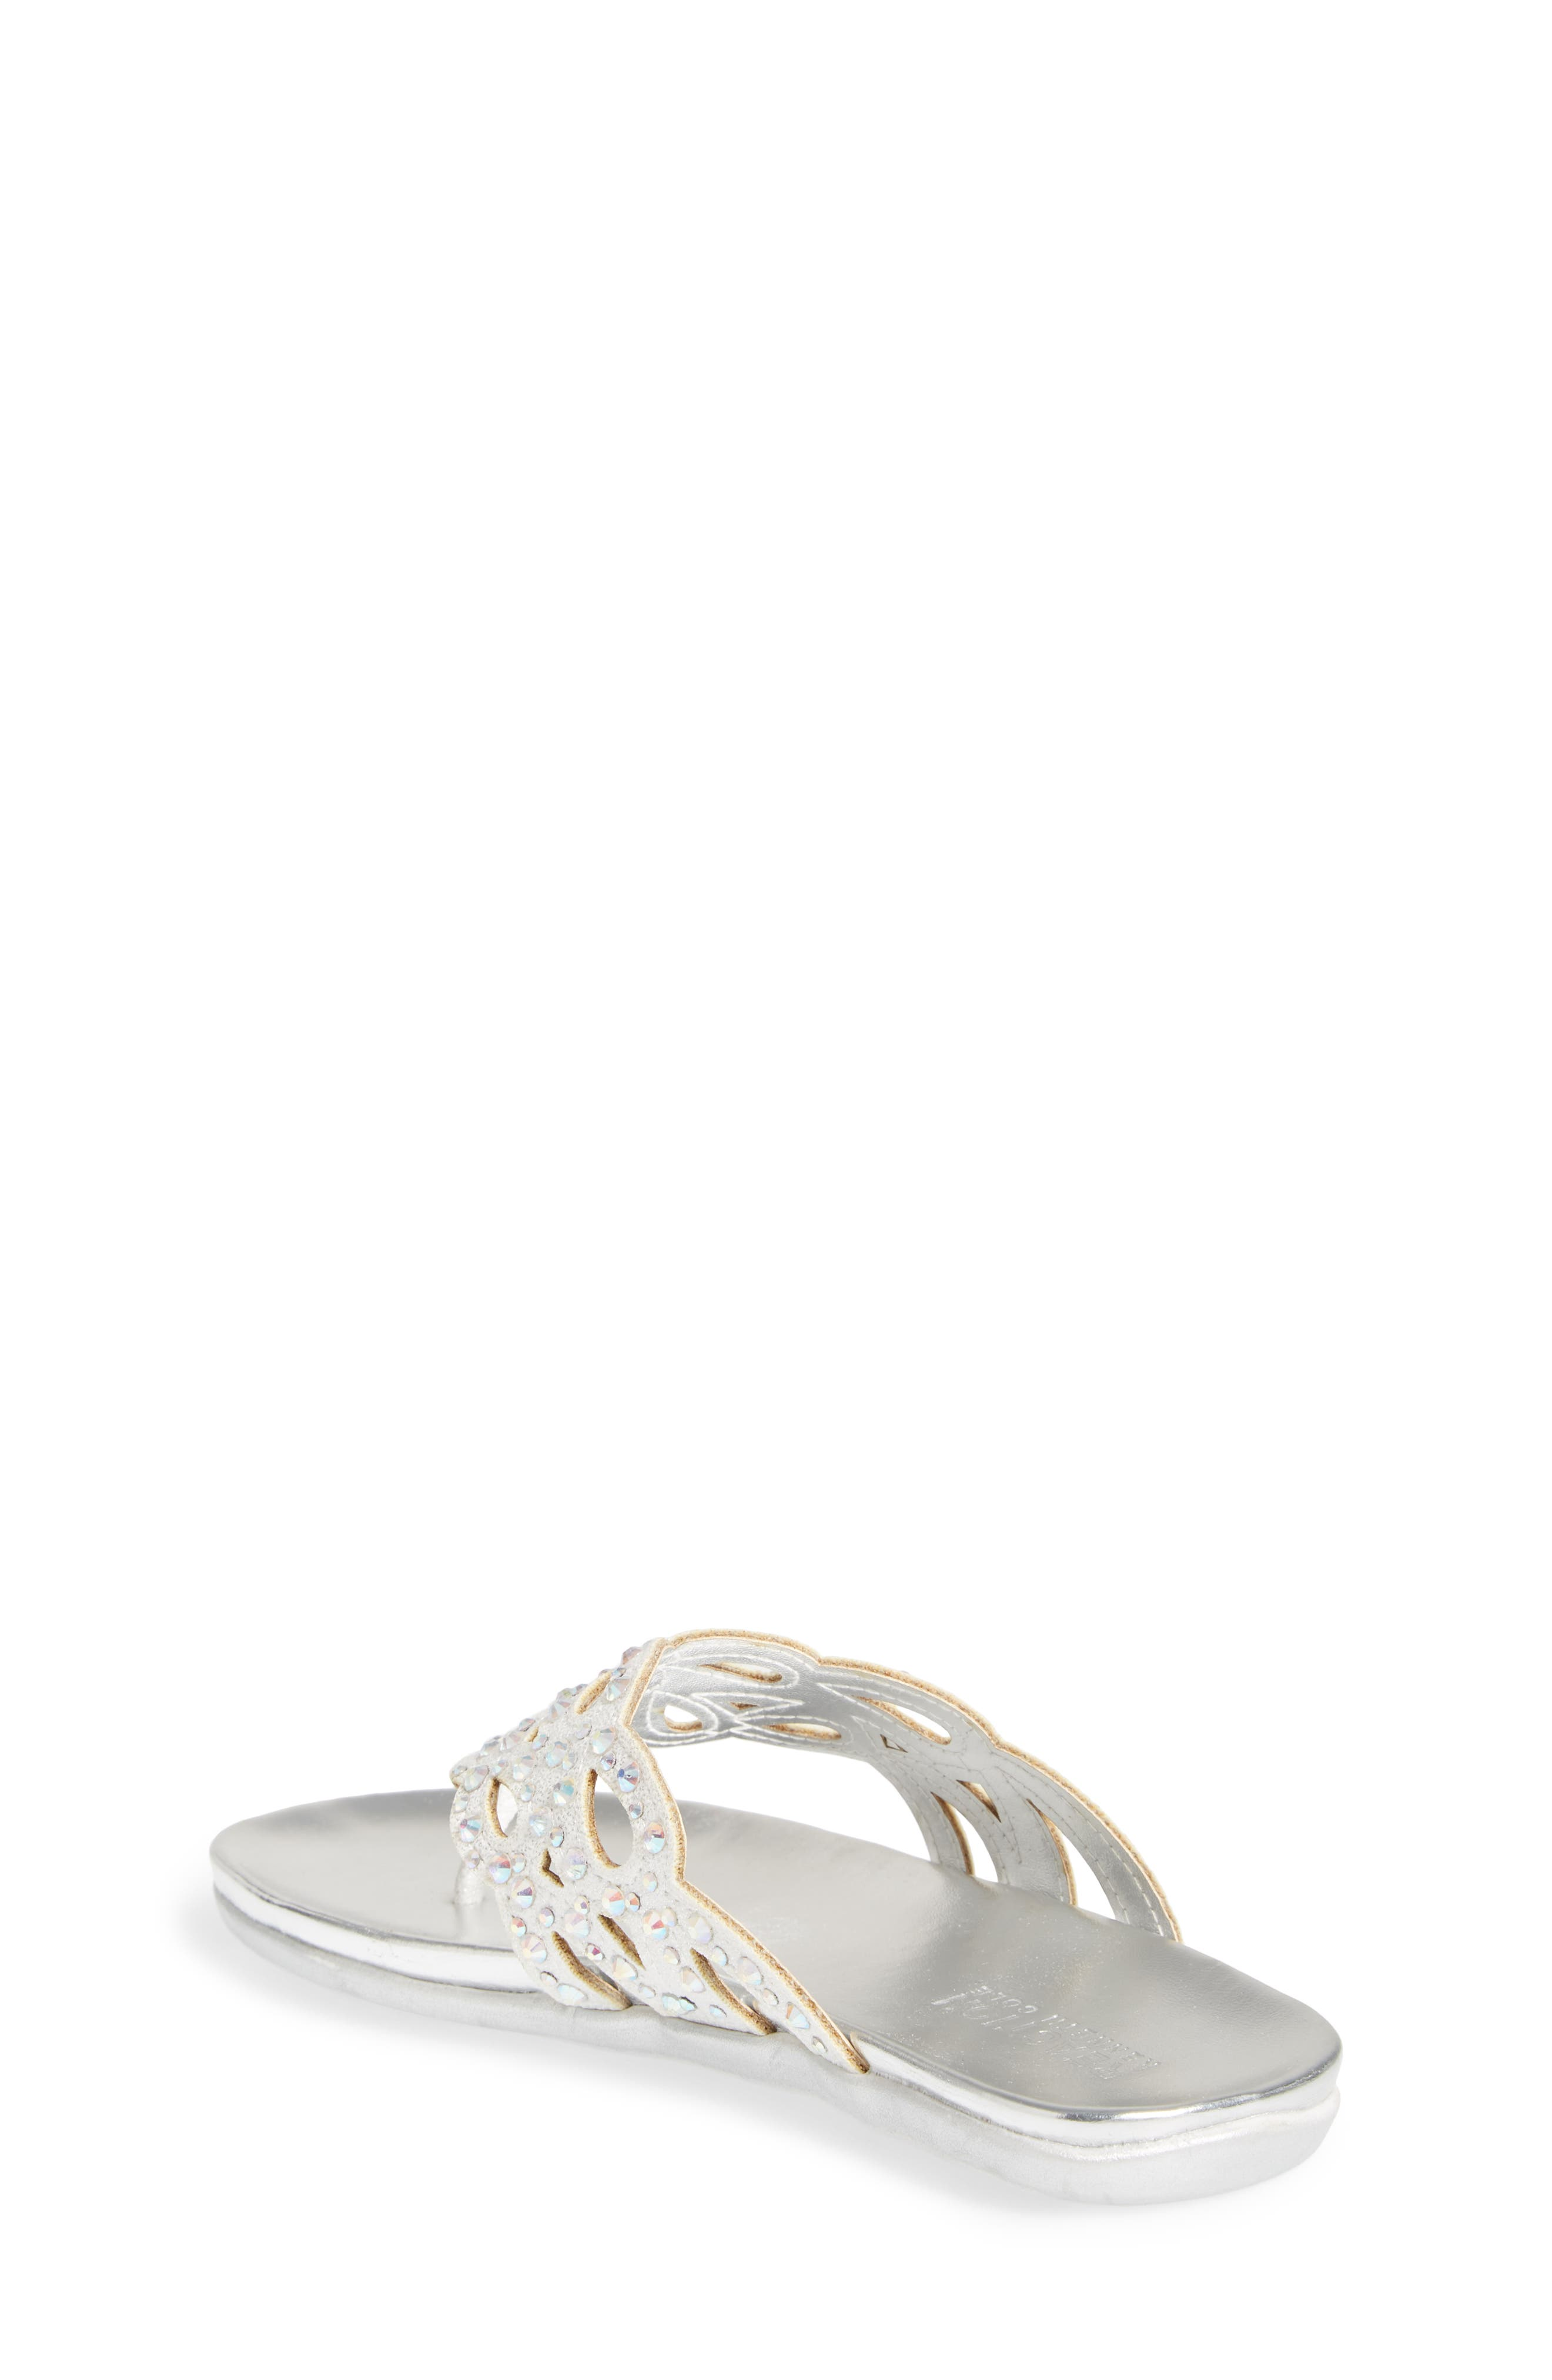 REACTION KENNETH COLE,                             Kenneth Cole New York Flutter Metallic Crystal Thong Sandal,                             Alternate thumbnail 2, color,                             044